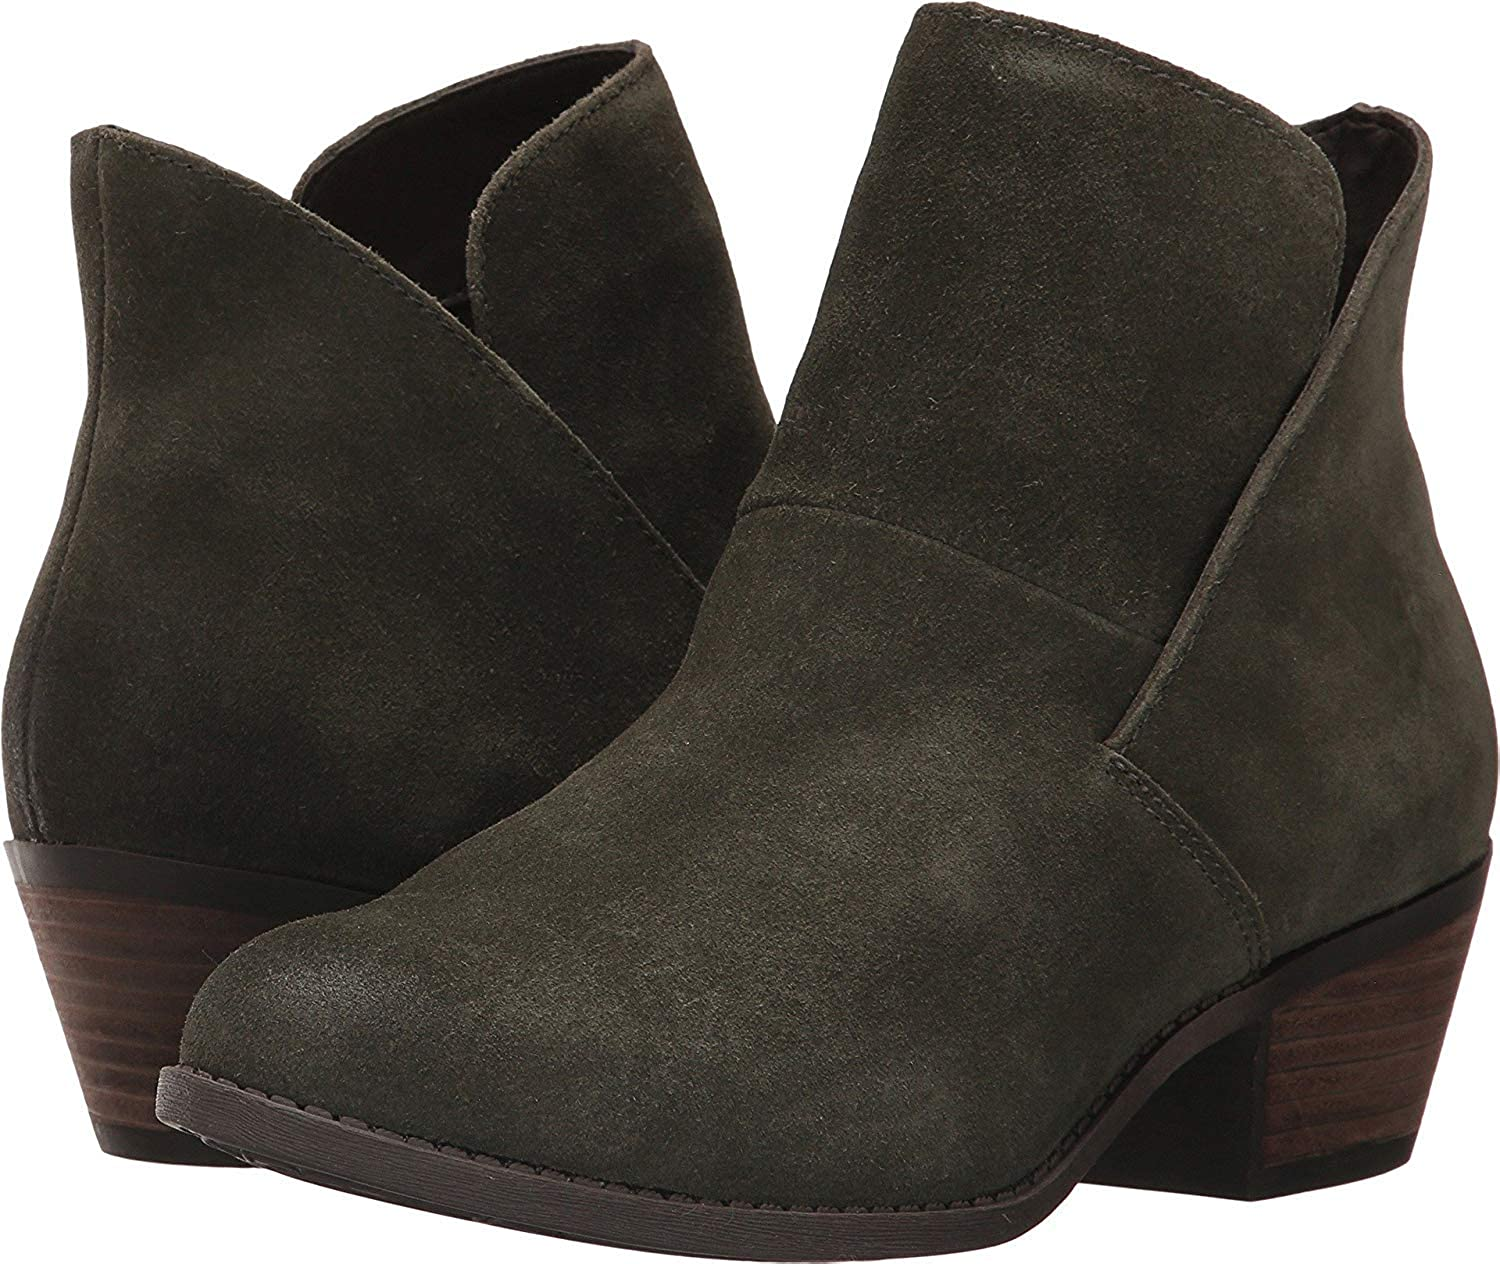 Moss Suede Me Too Womens Zena 14 Leather Almond Toe Ankle Fashion Boots